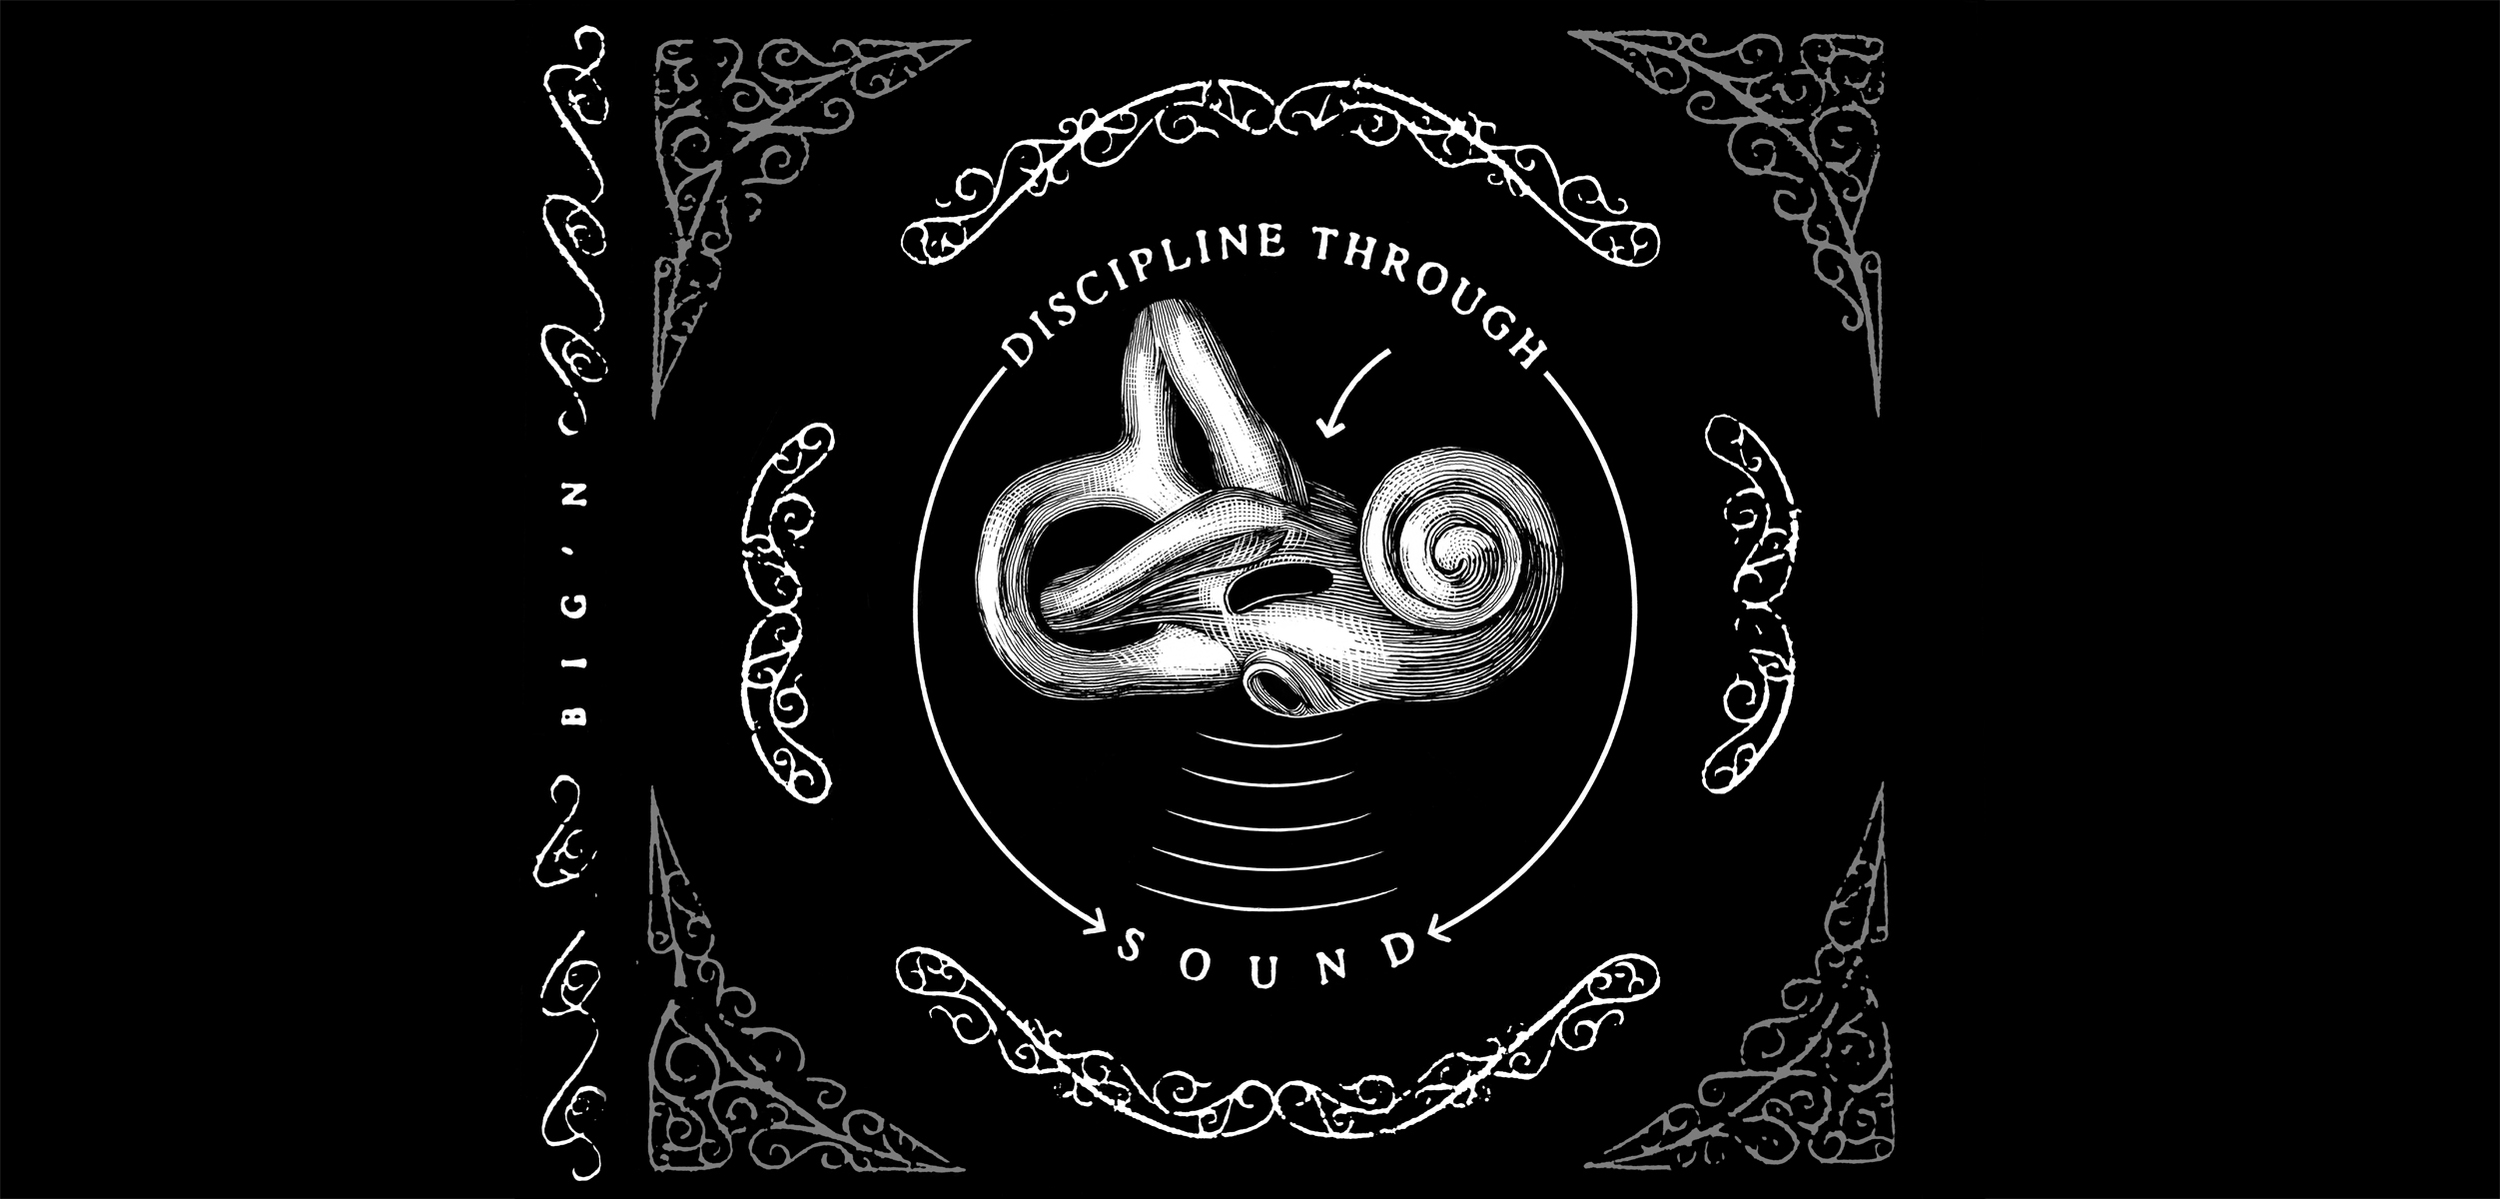 Big'n,  Discipline Through Sound . CD tray, inside.  1996. Pen and ink, Scratch board. Released by Gasoline Boost Records.